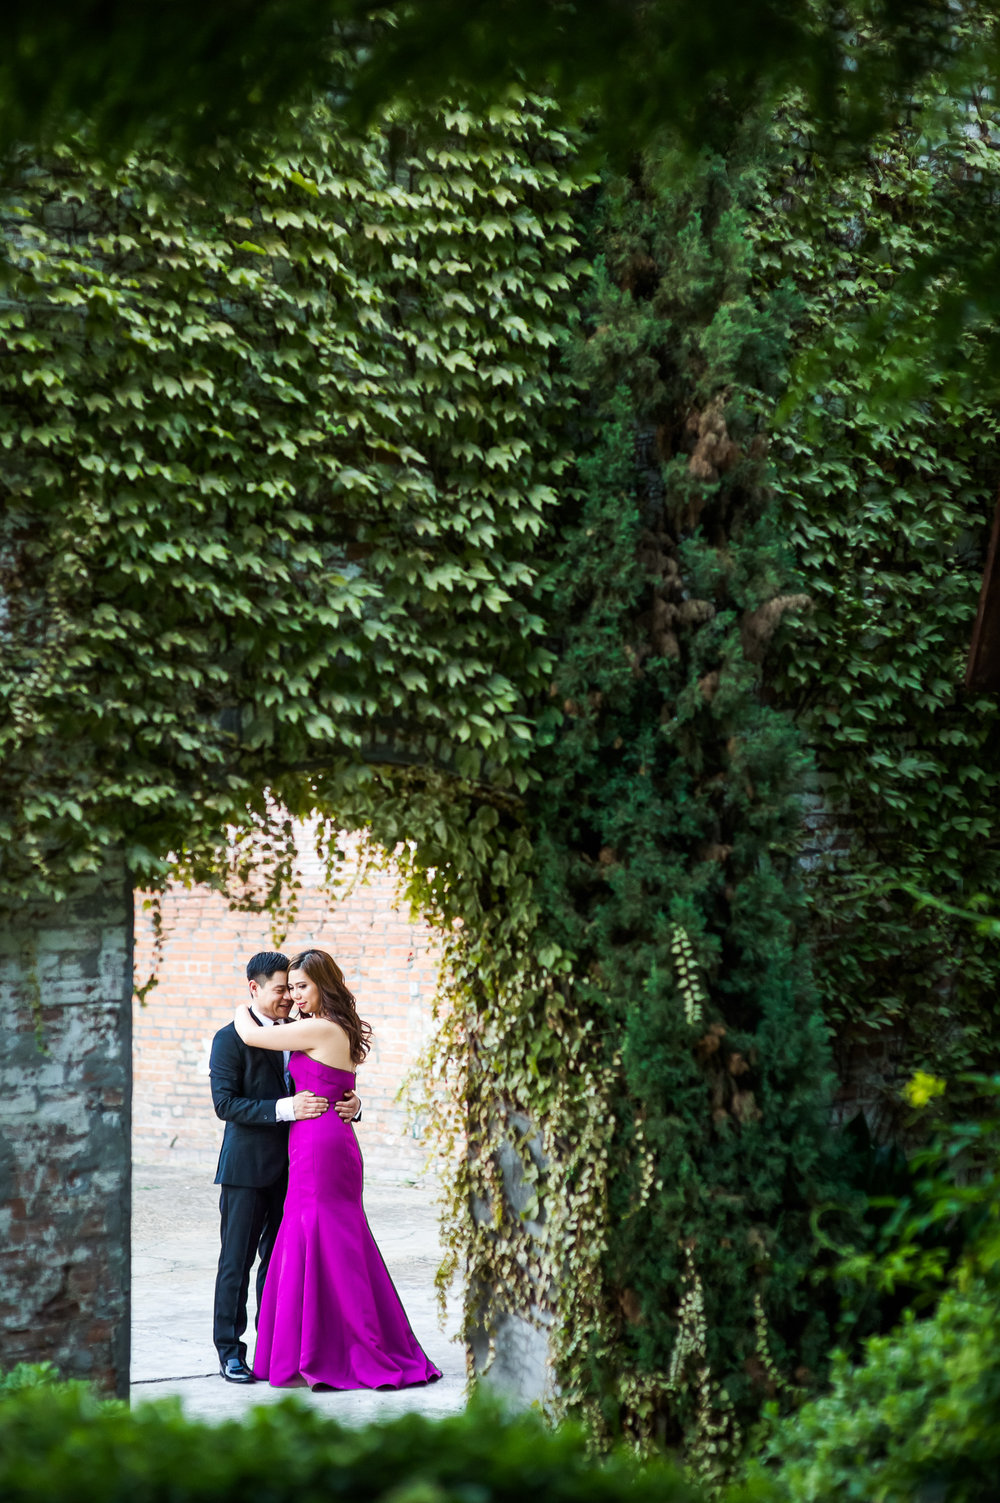 63-David Loi Studios - Cotton Mill - Mckinney Texas - Engagement Session-14276.jpg